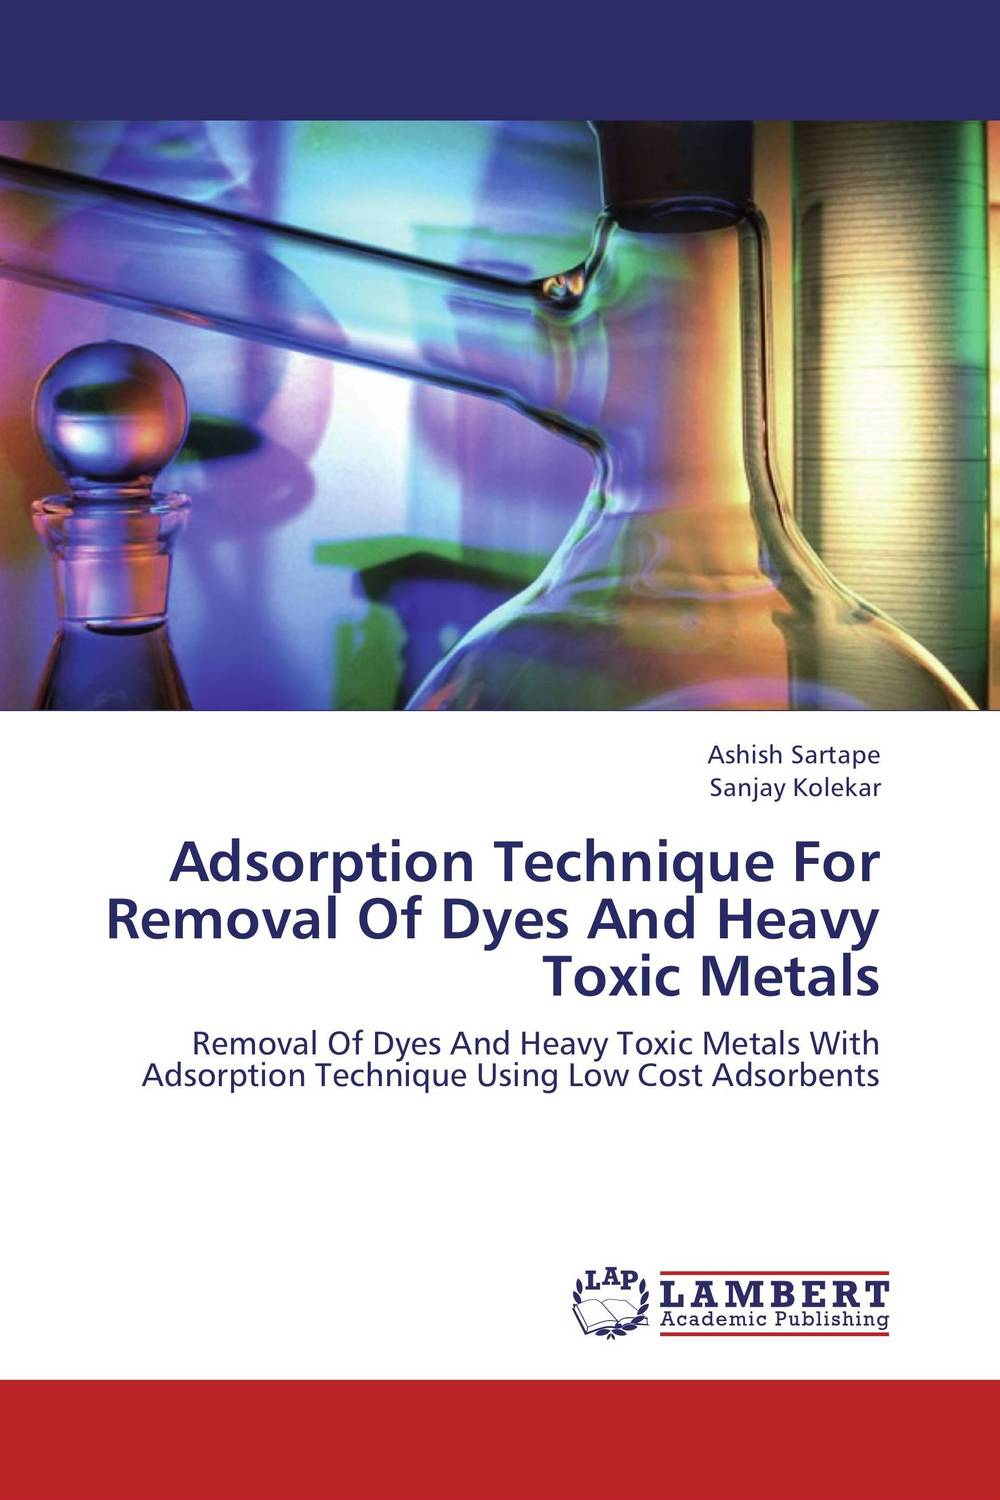 Adsorption Technique For Removal Of Dyes And Heavy Toxic Metals купить